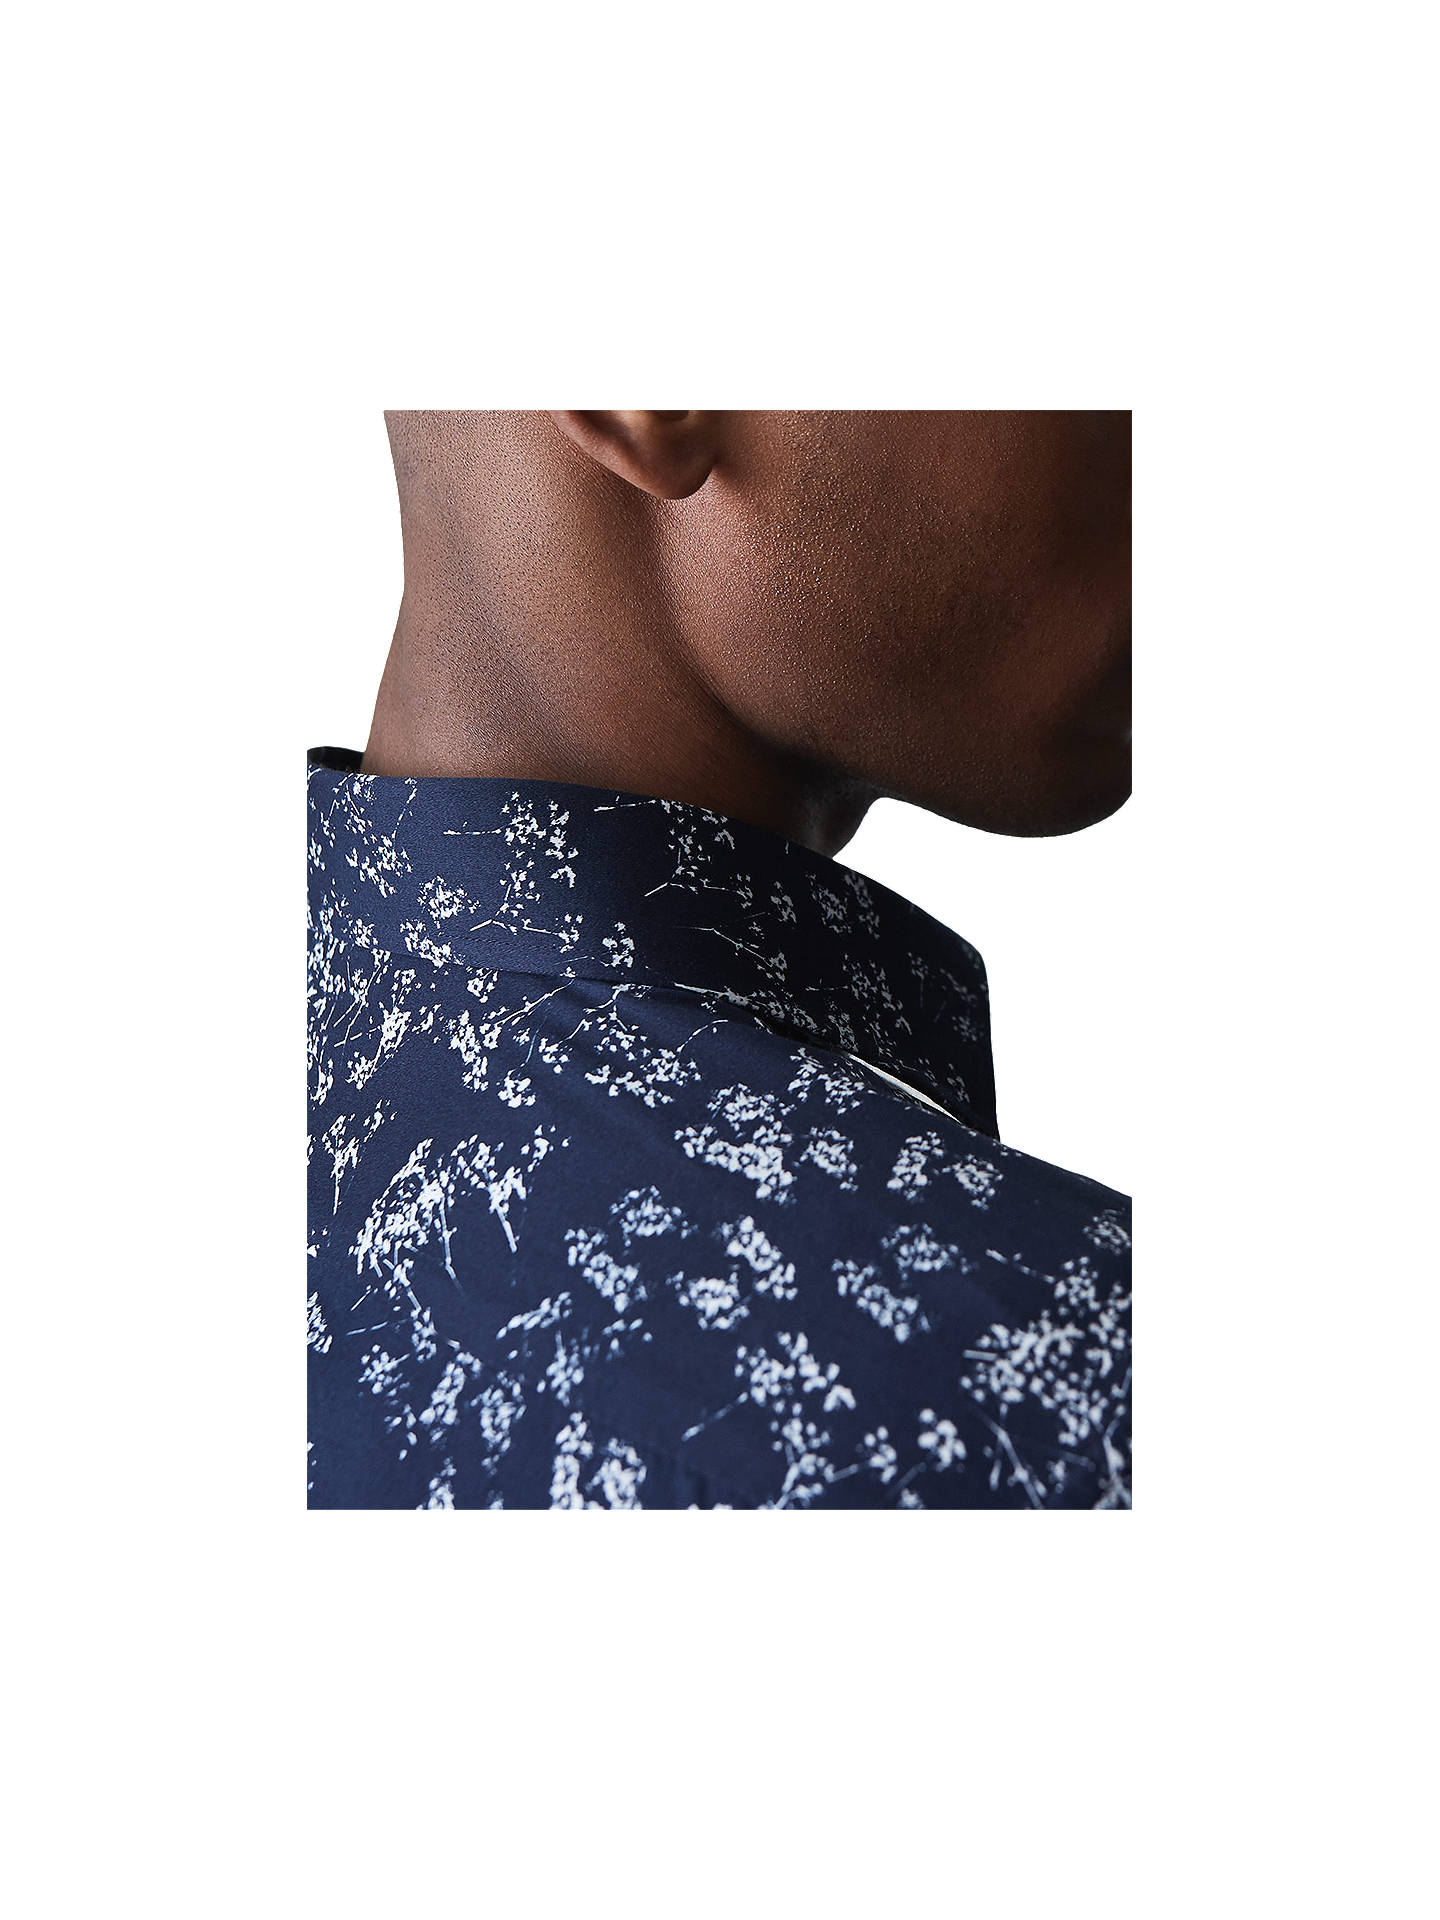 Buy Reiss Stafford Floral Print Shirt, Navy, S Online at johnlewis.com